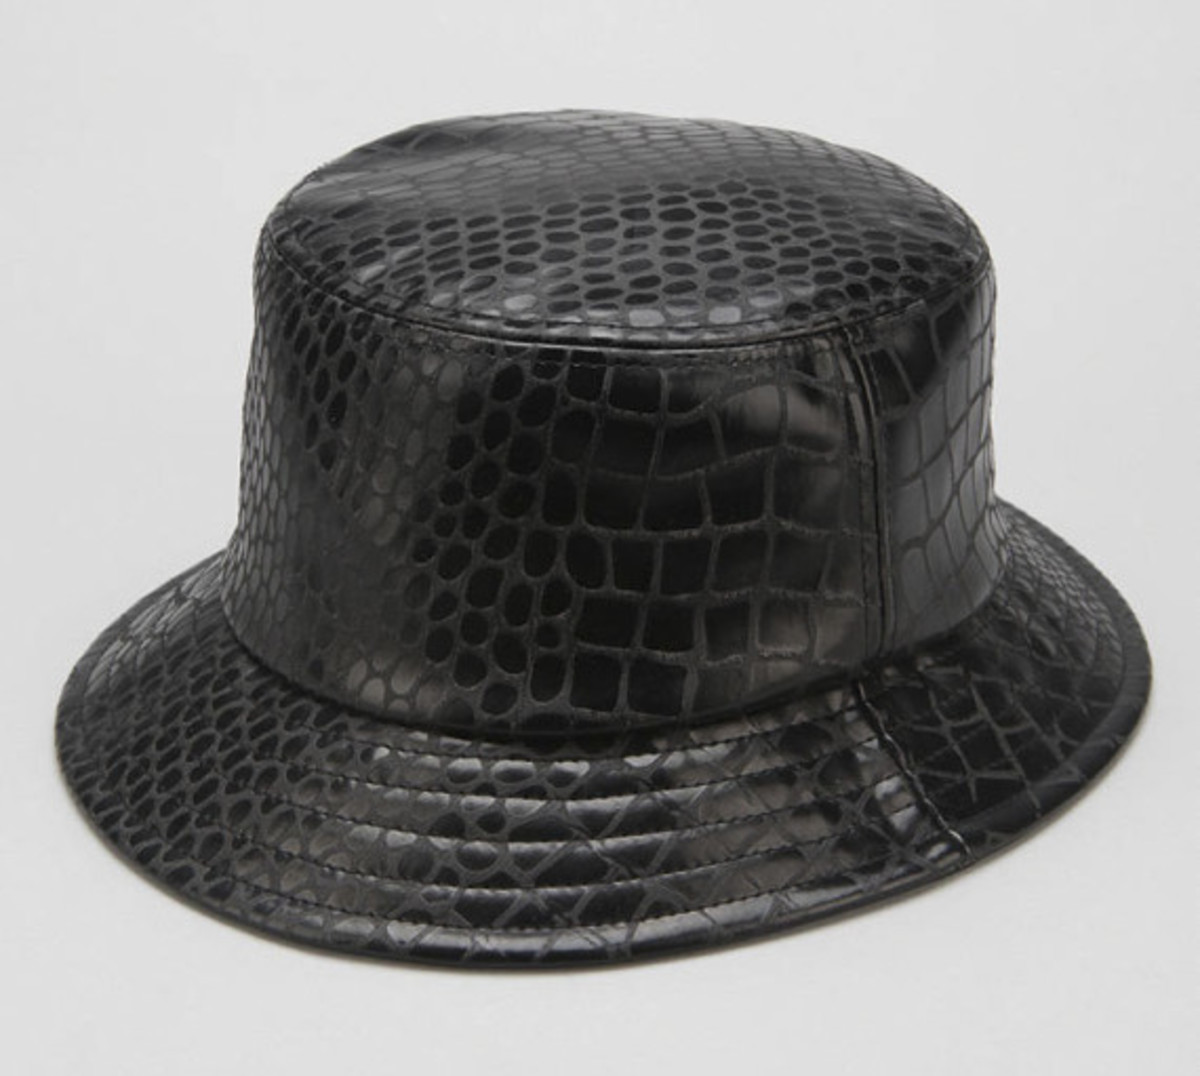 stussy-croc-faux-leather-bucket-hat-urban-outfitters-exclusive-02